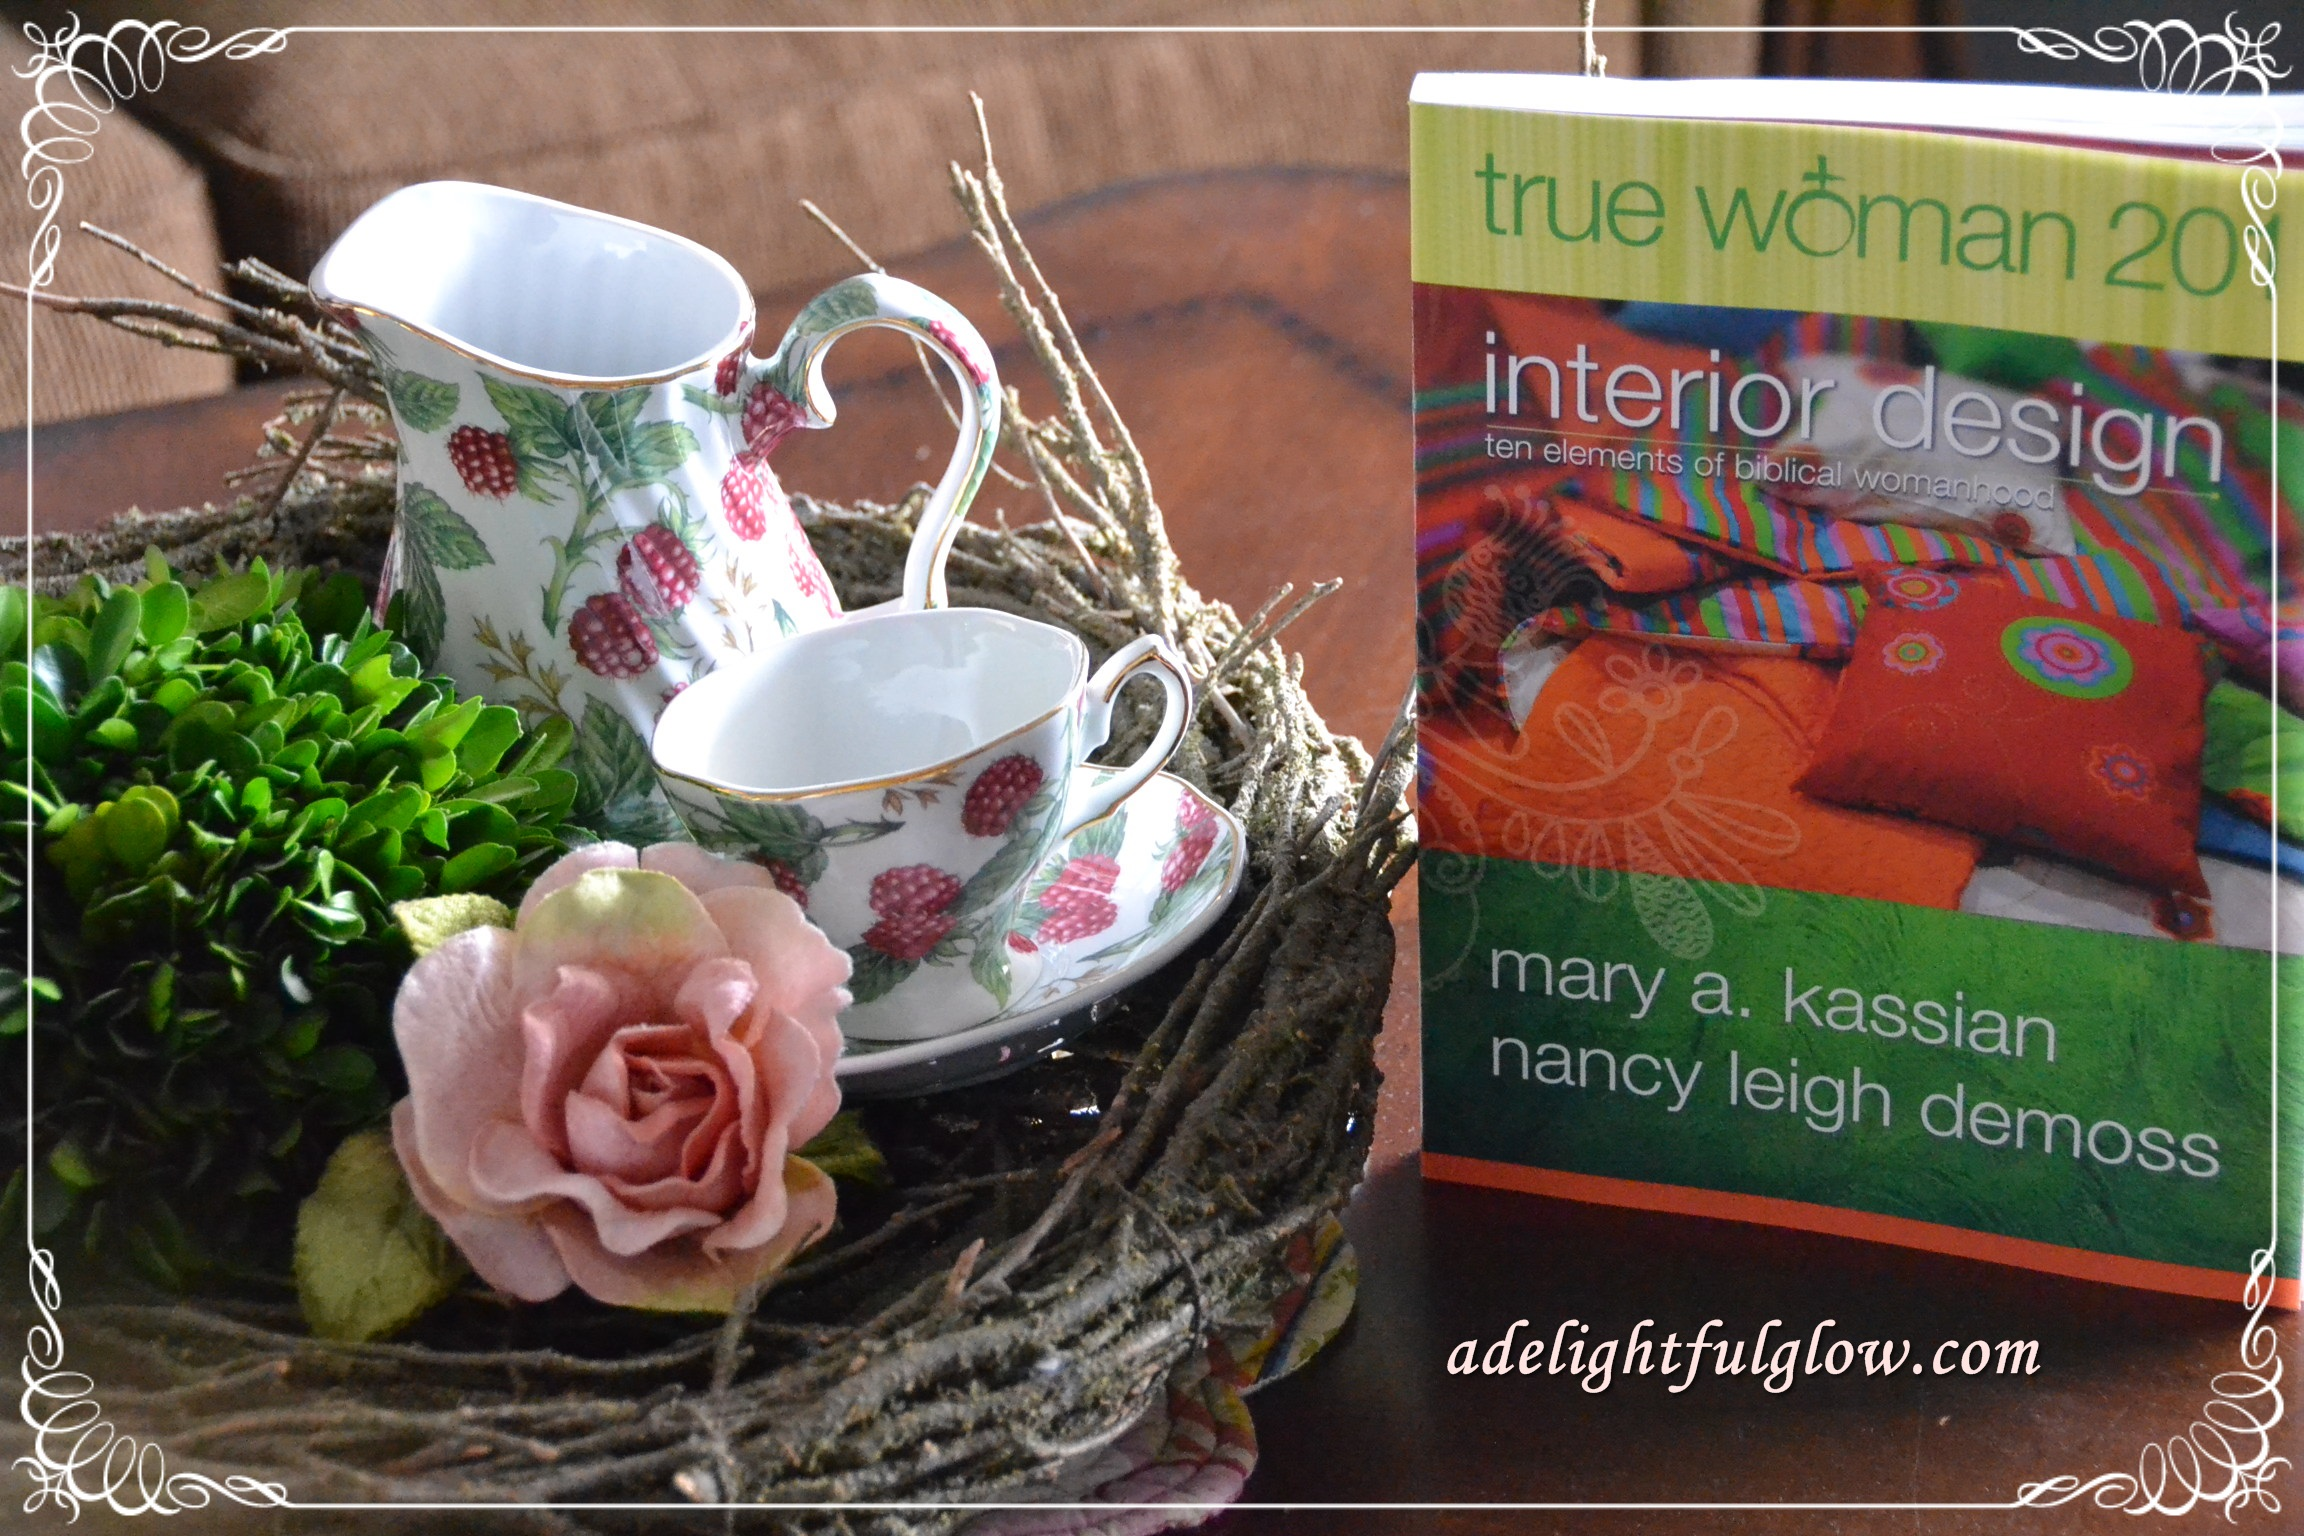 Im Giving Away A True Woman 201 Interior Design Workbook Delightful Glow